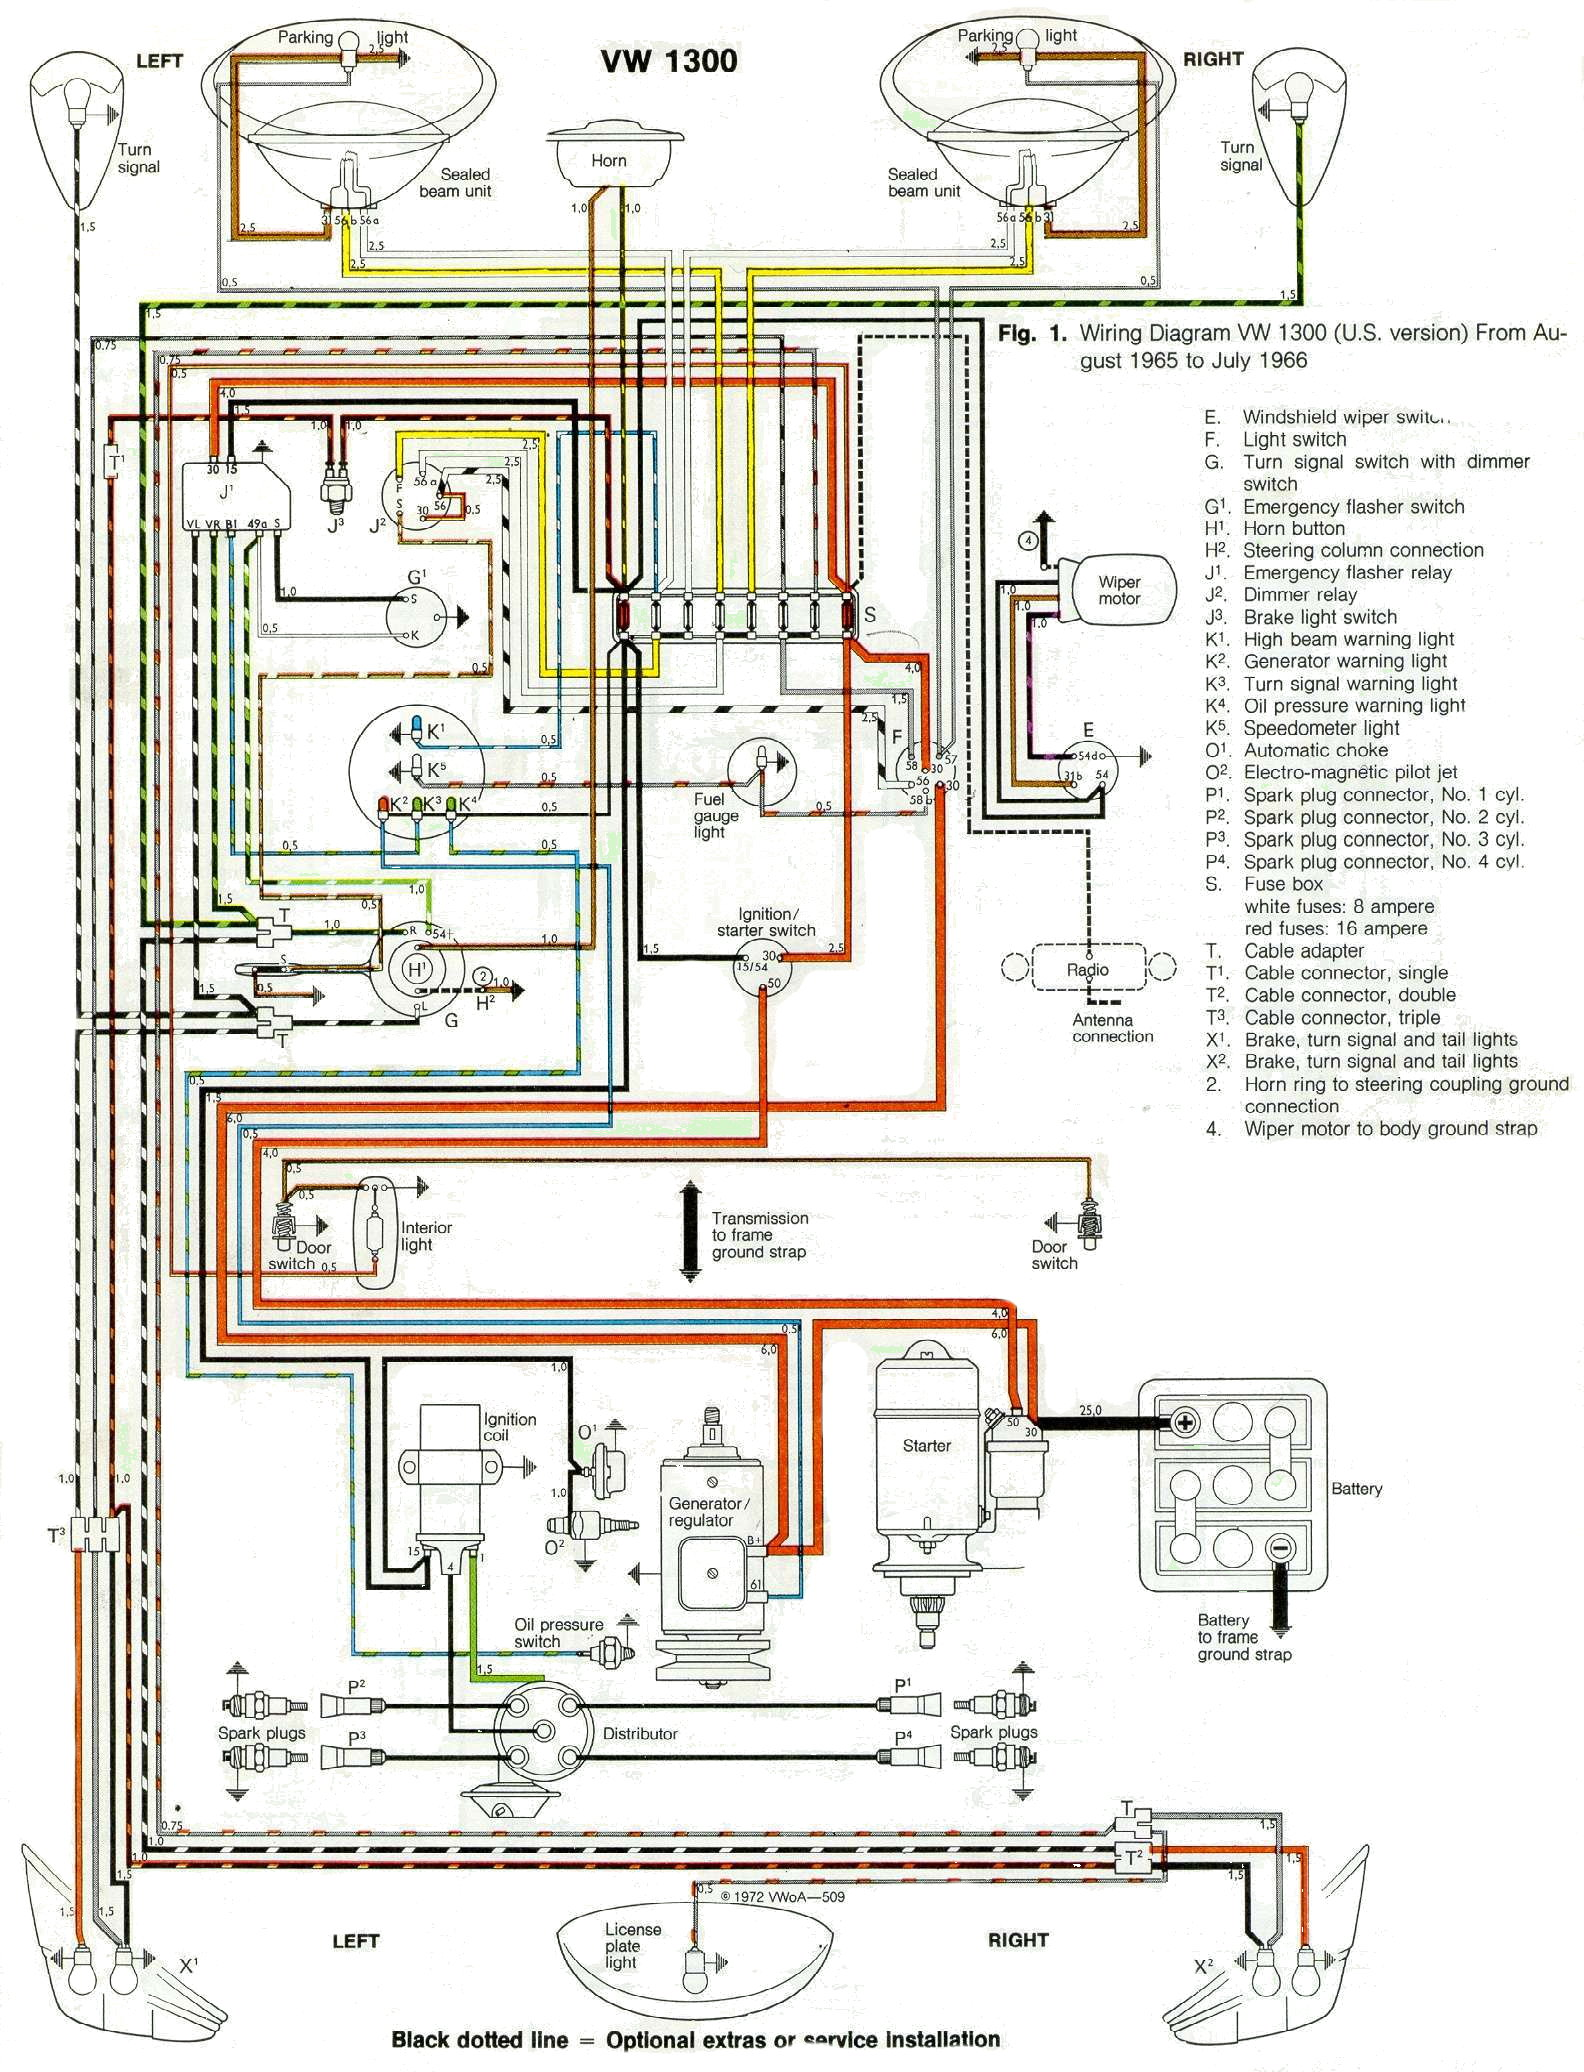 1966 Wiring 1966 wiring diagram vw beetle wiring diagram at couponss.co